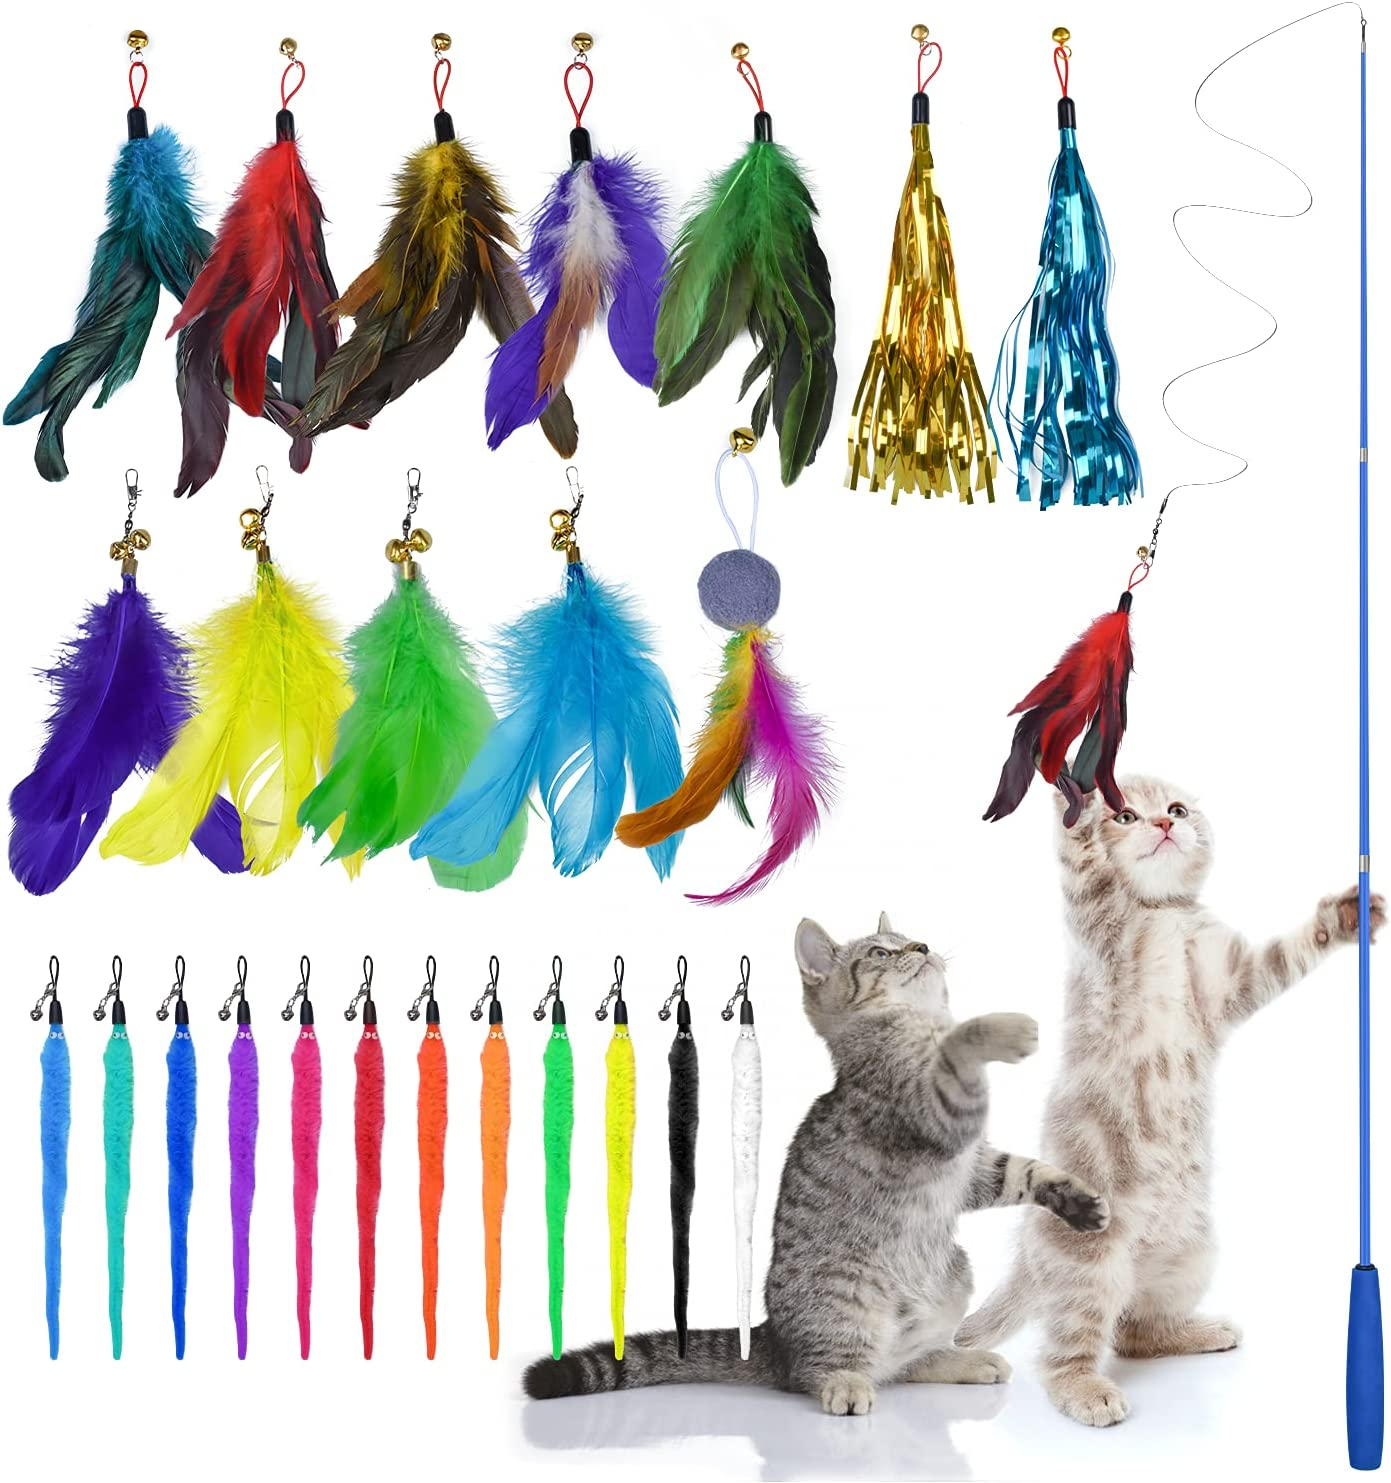 YOTESO Feather New product type Teaser Sales for sale Cat Retractable Wand Toys 25PCS